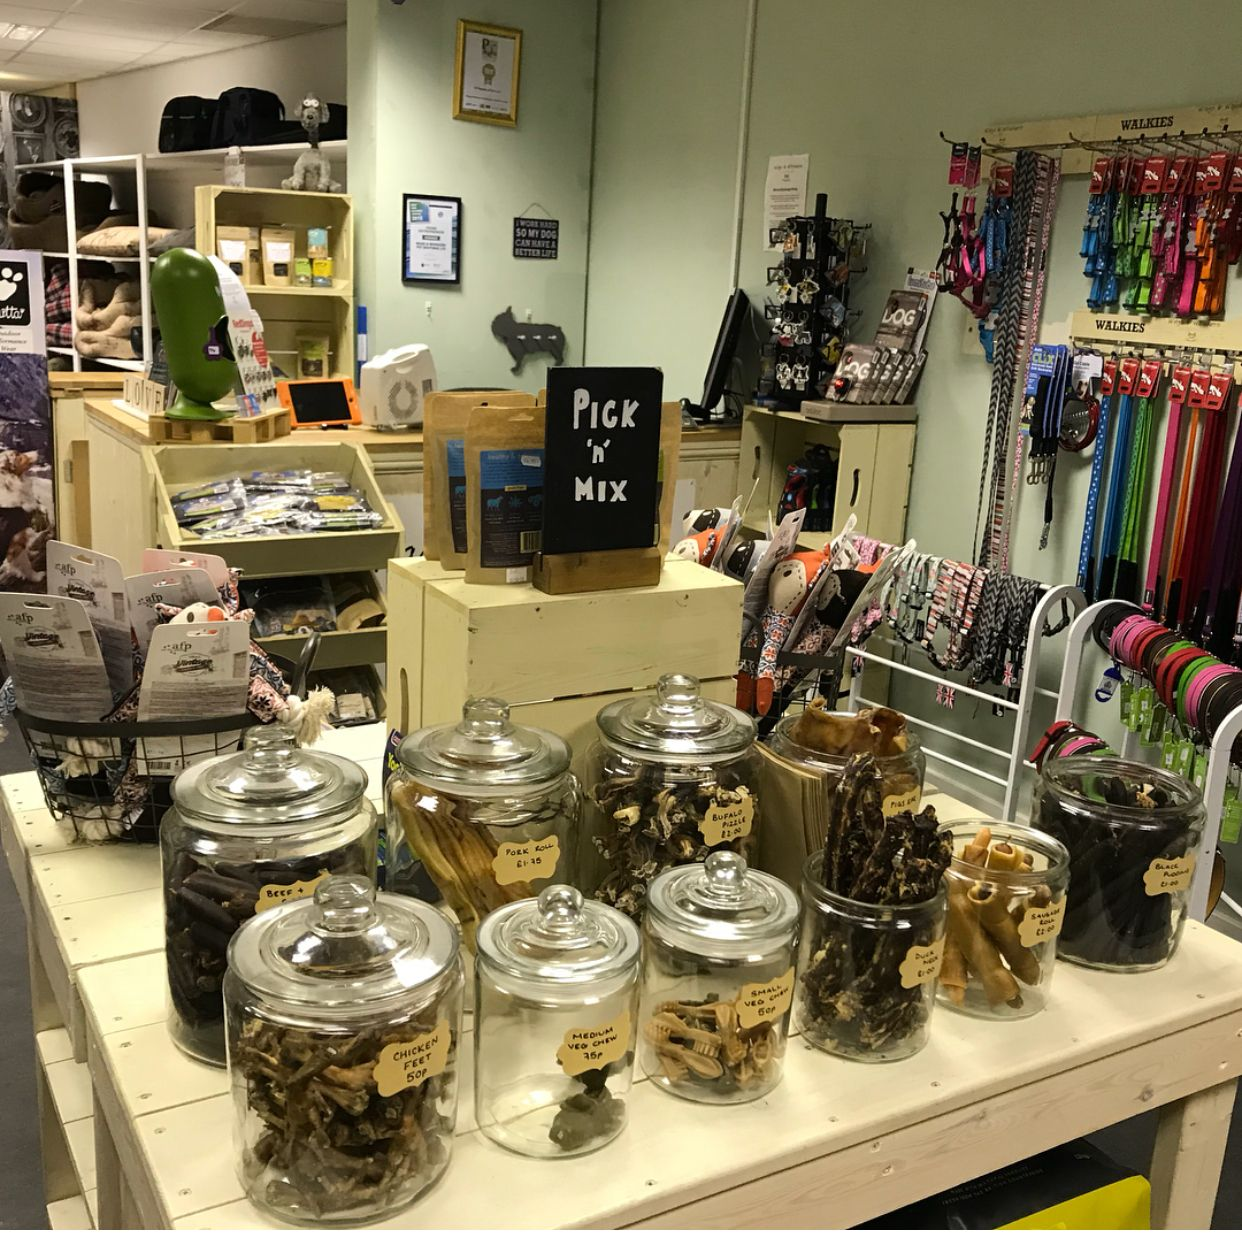 Pin By Irina Uskova On Ideas For Clinic And Petshop Pet Store Design Dog Grooming Shop Pet Store Display